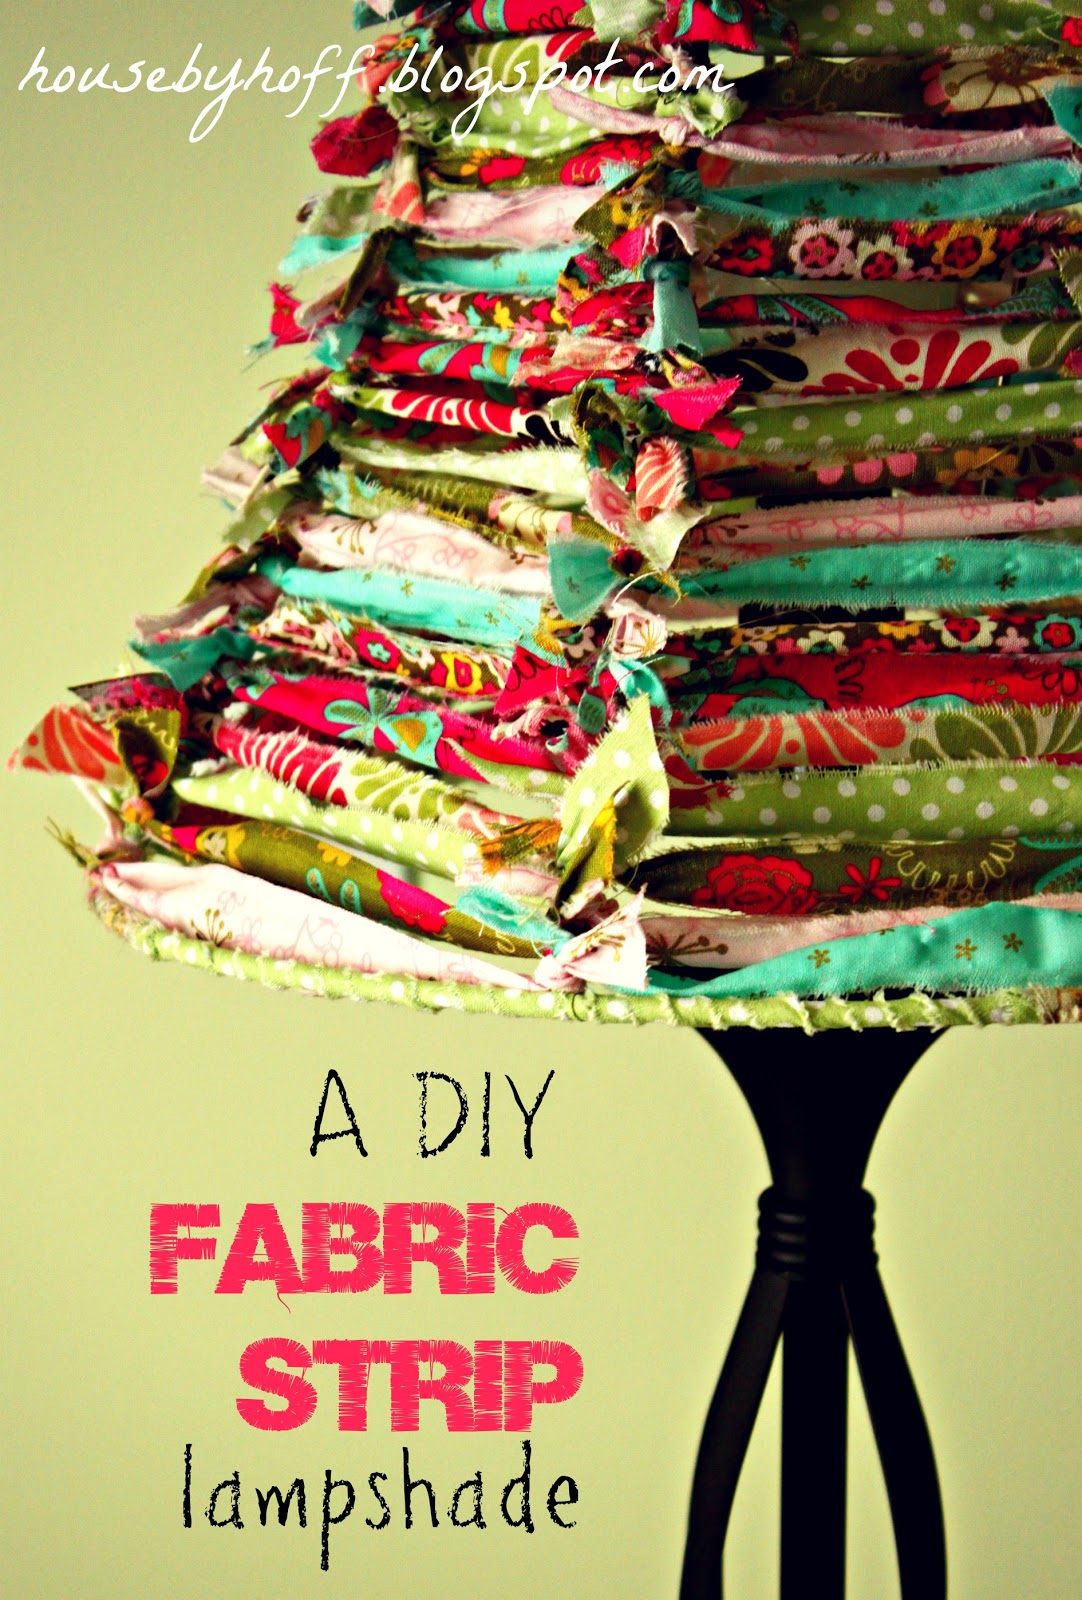 A fabric scrap lampshade its 30 thursday house by hoff how to make a fabric strip lampshade via housebyhoff aloadofball Choice Image